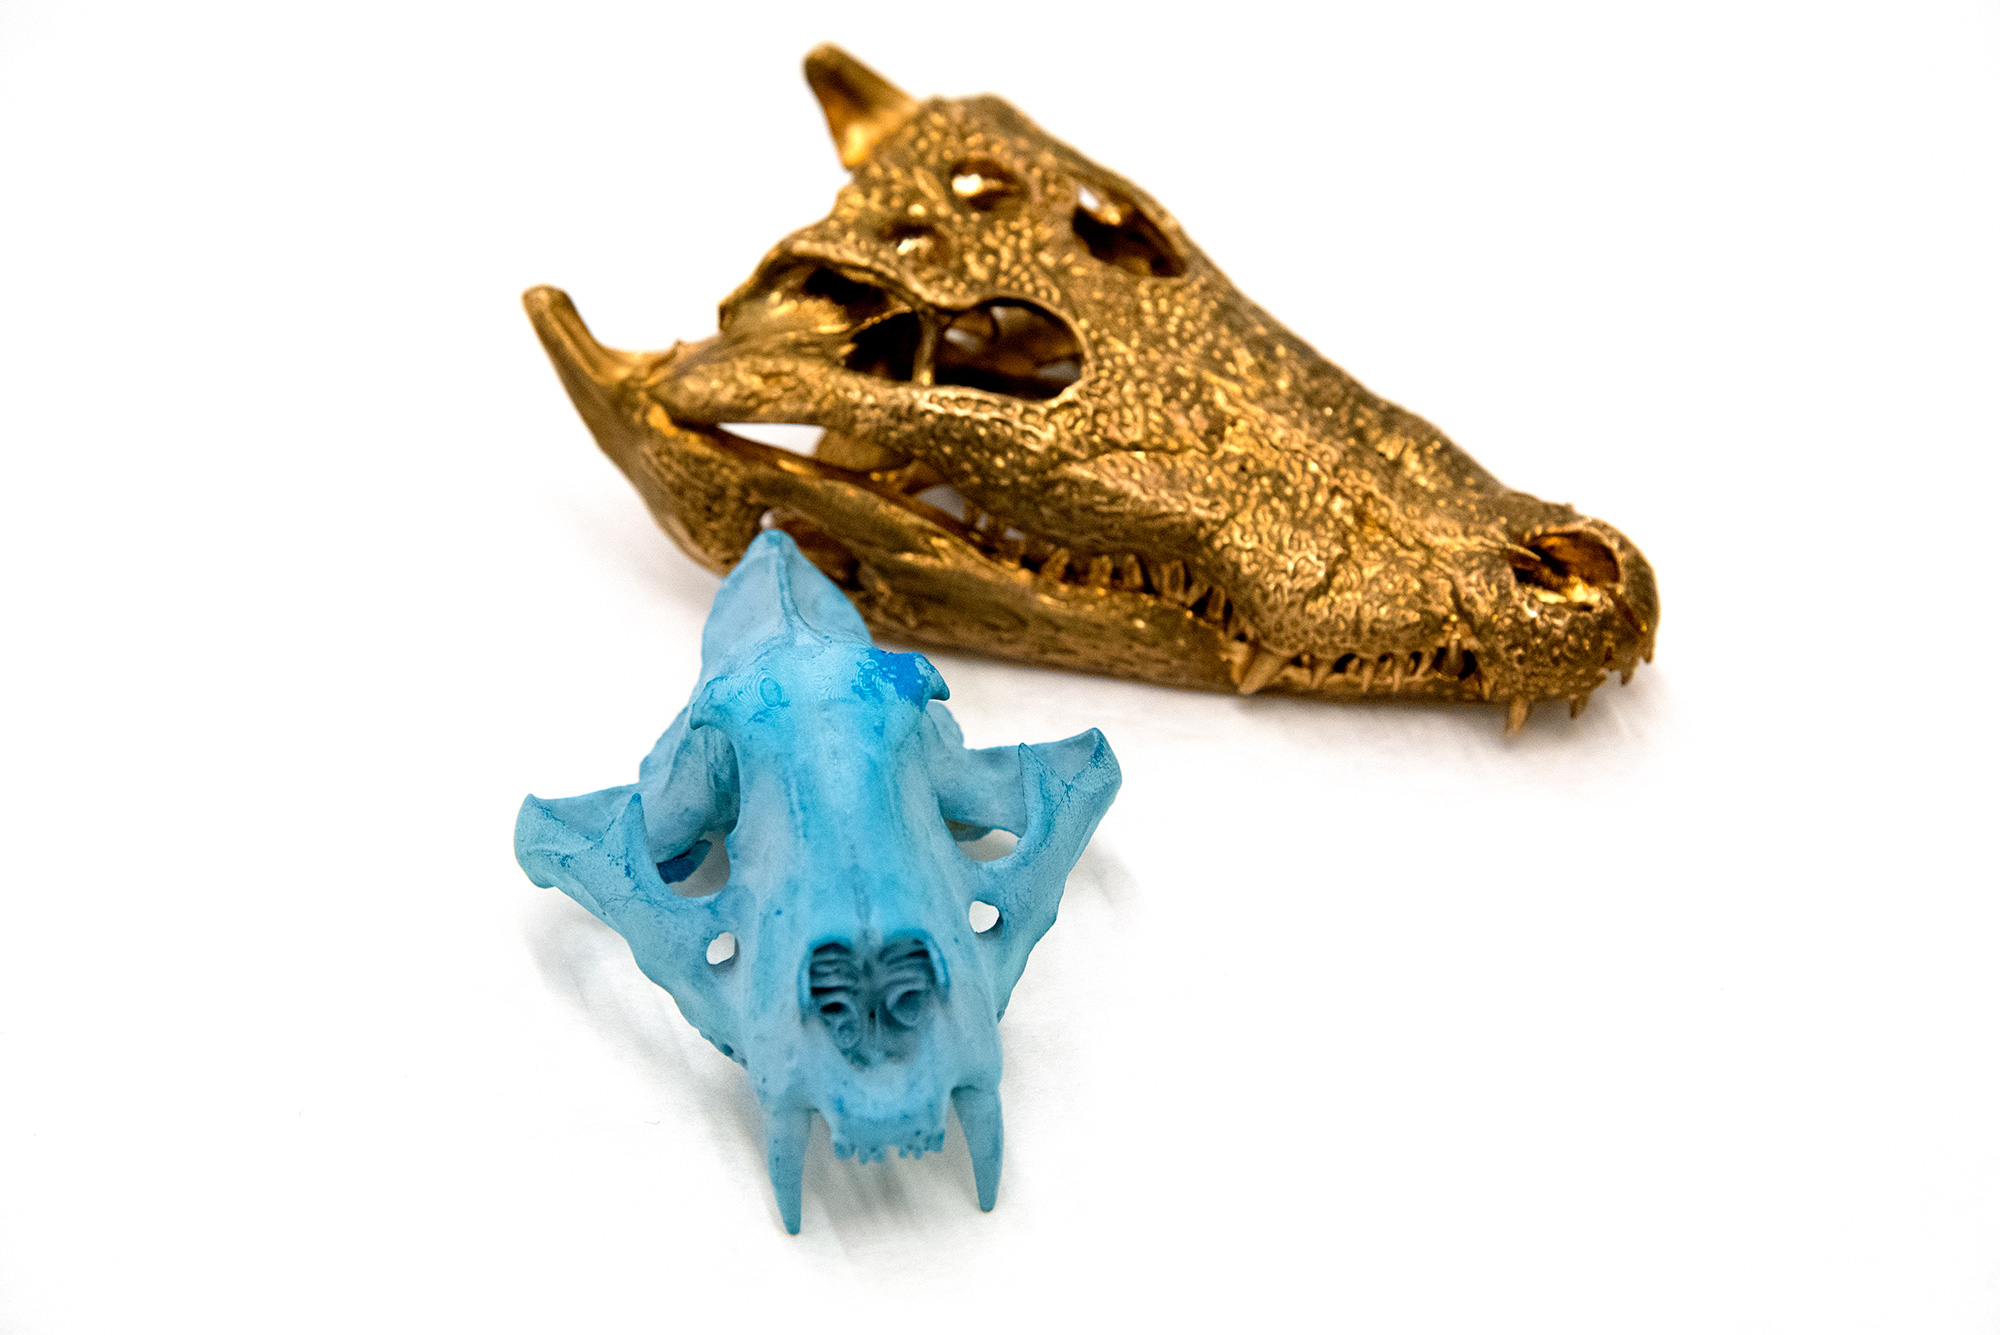 A 3D printed animal skull in wax and a cast metal alligator skull